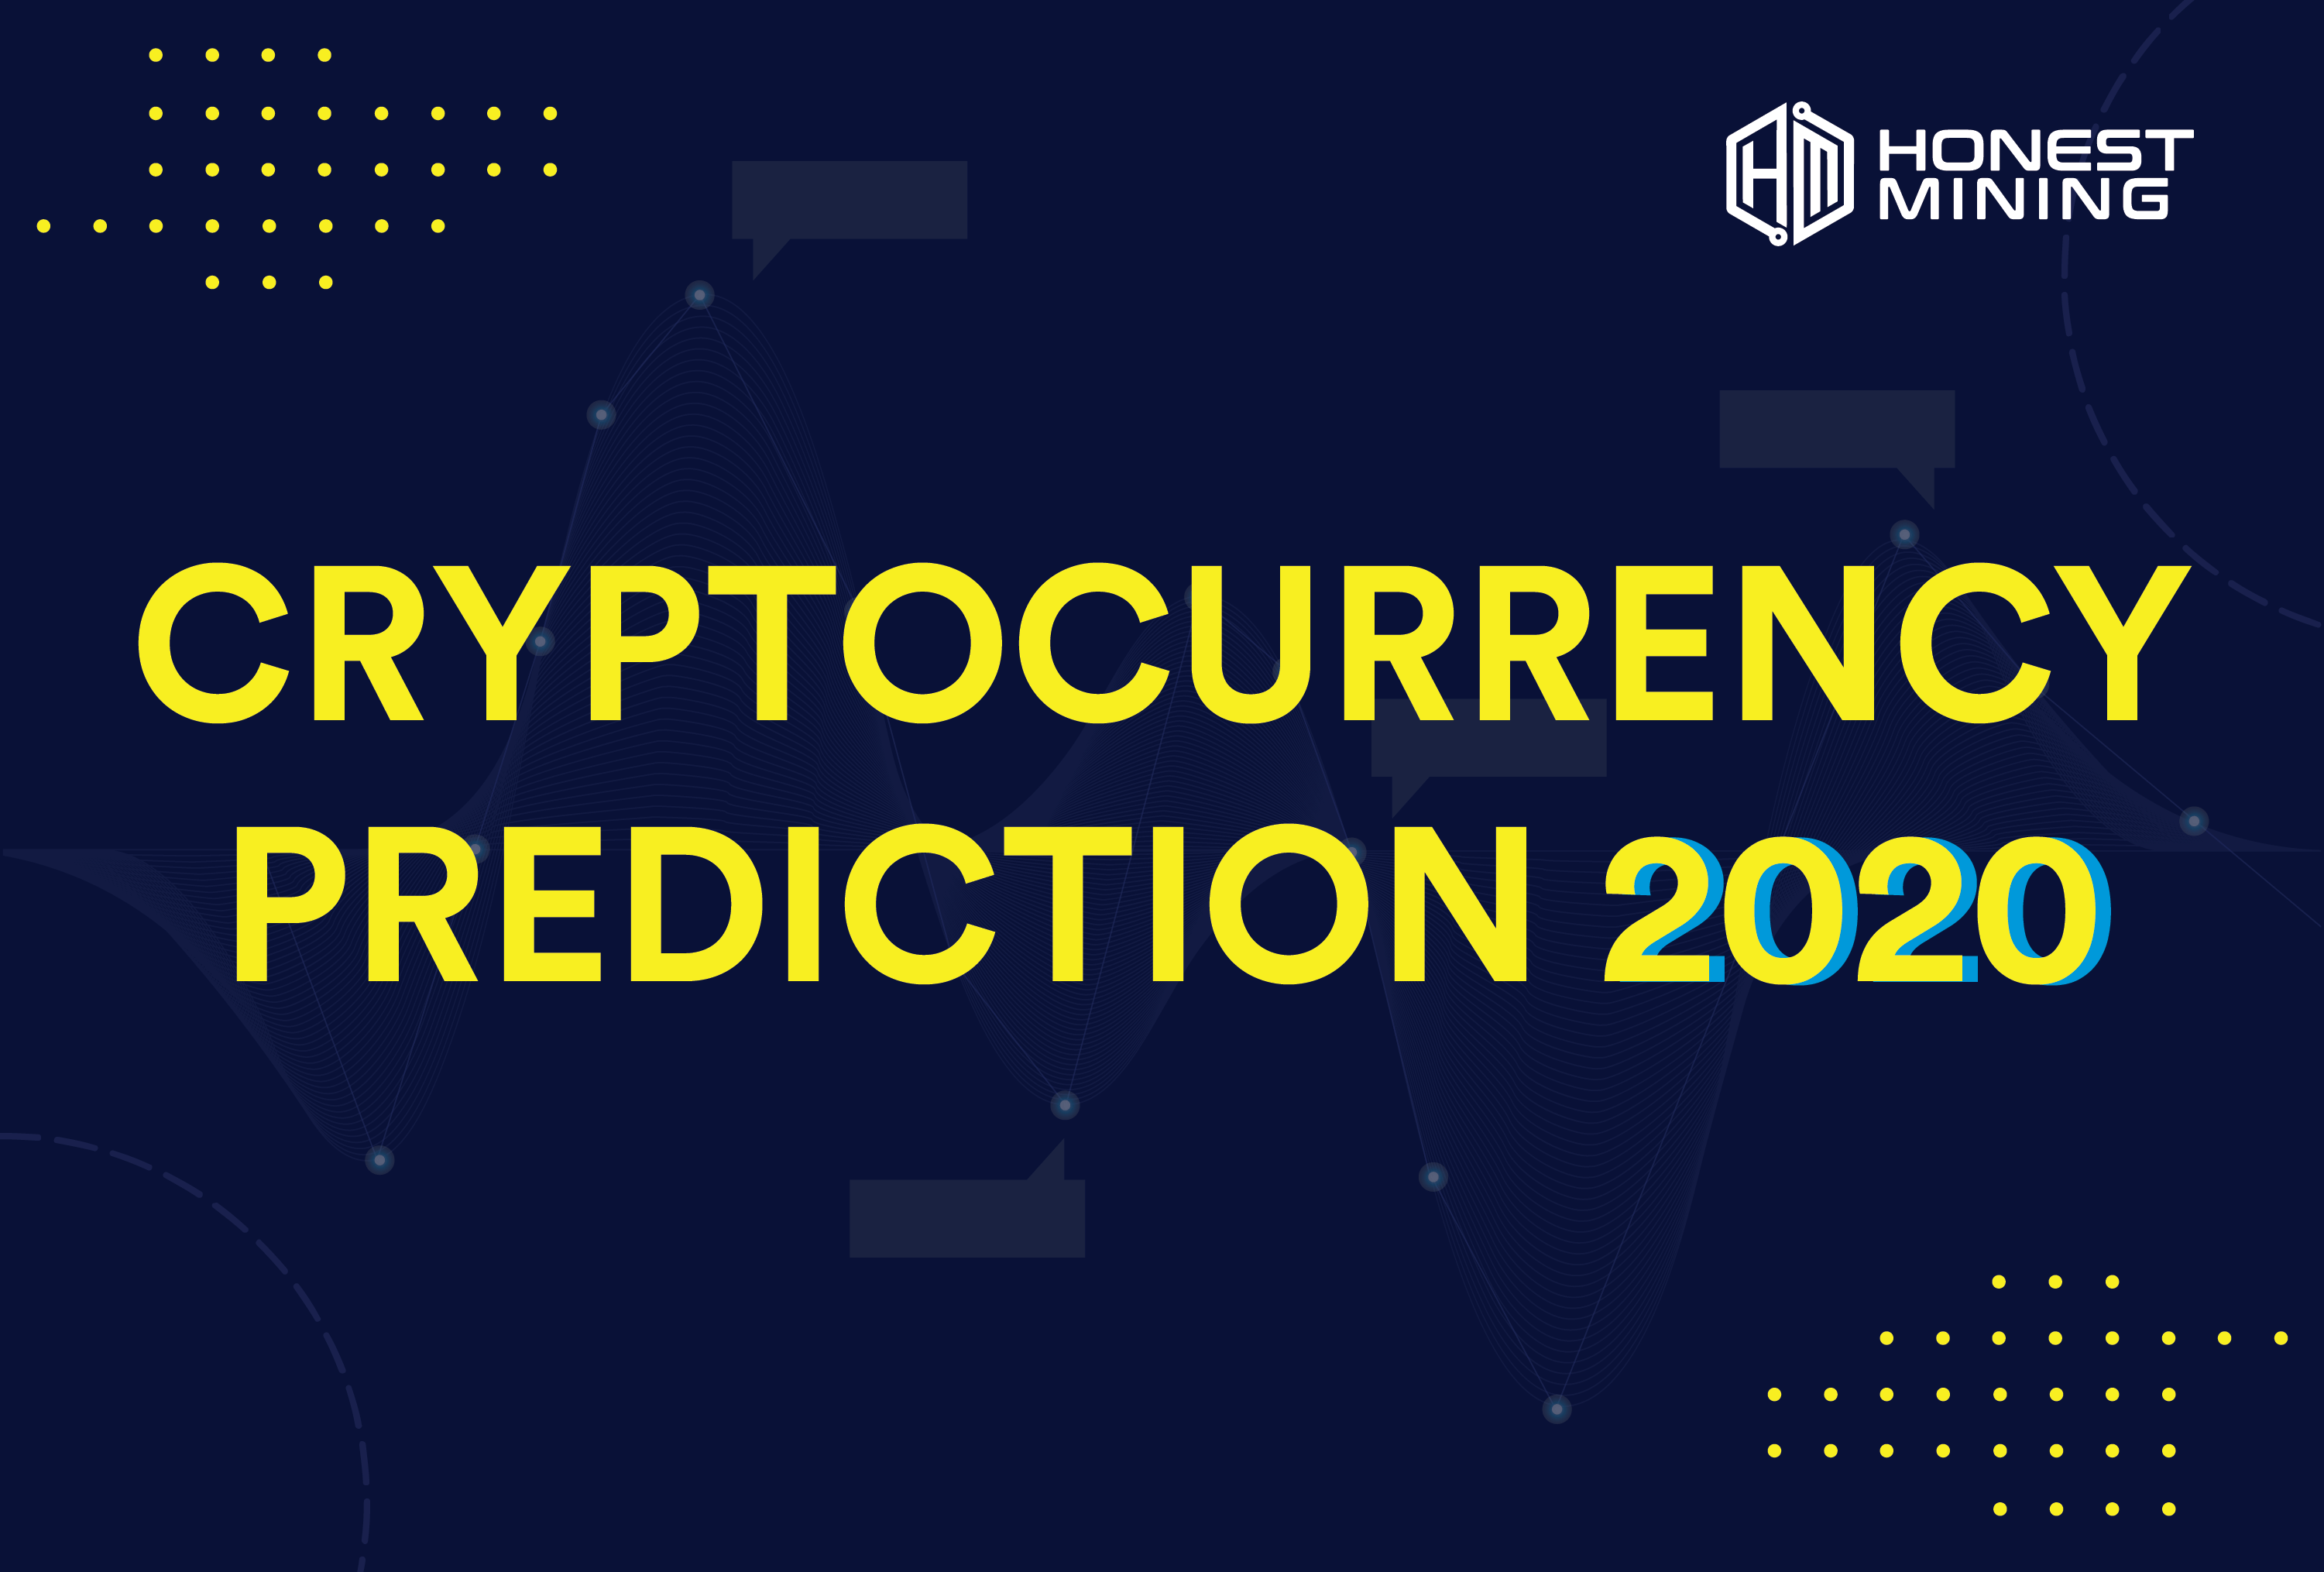 Honest Mining Cryptocurrency Prediction 2020